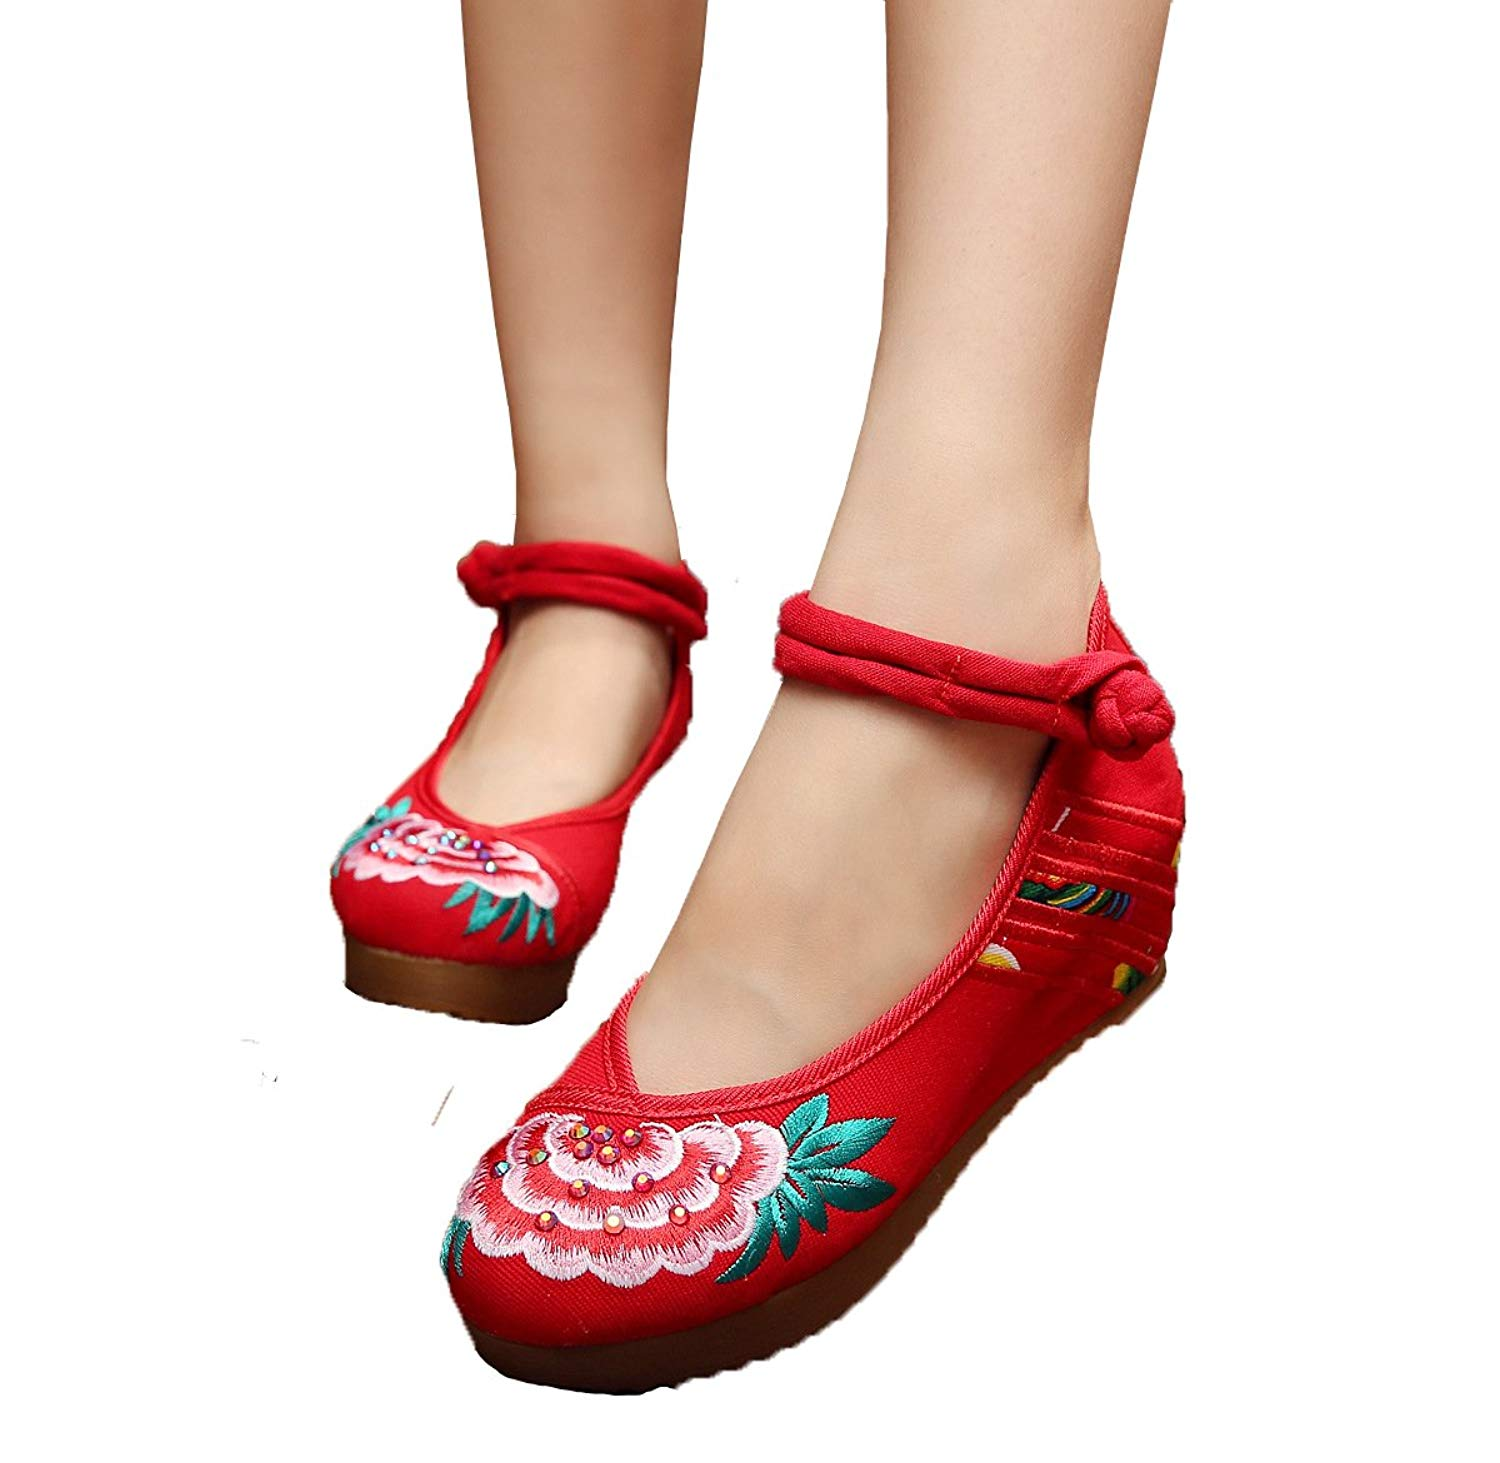 c1lint778563 5 Centimeters Pure Eleusine Indica Wedge Increased Women's Shoes Casual and Comfortable Soft Bottom Shoes